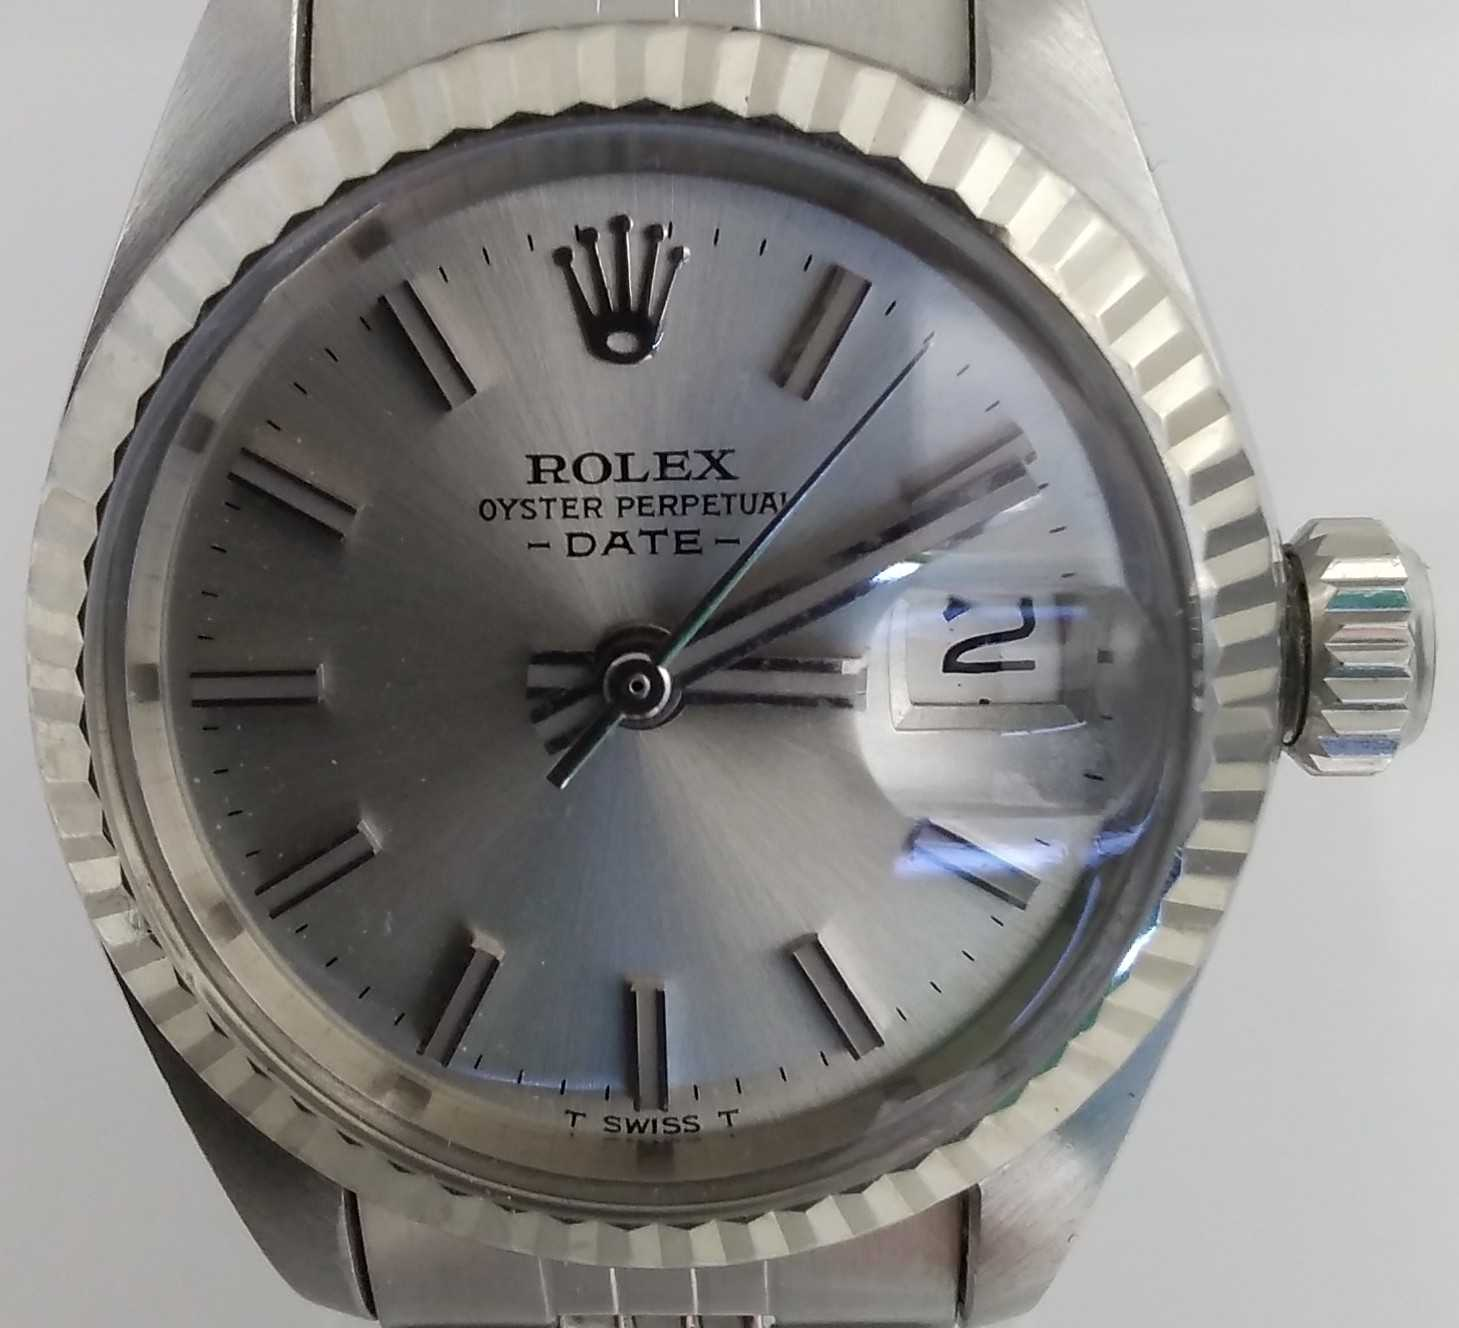 OYSTER PERPETUAL|ROLEX